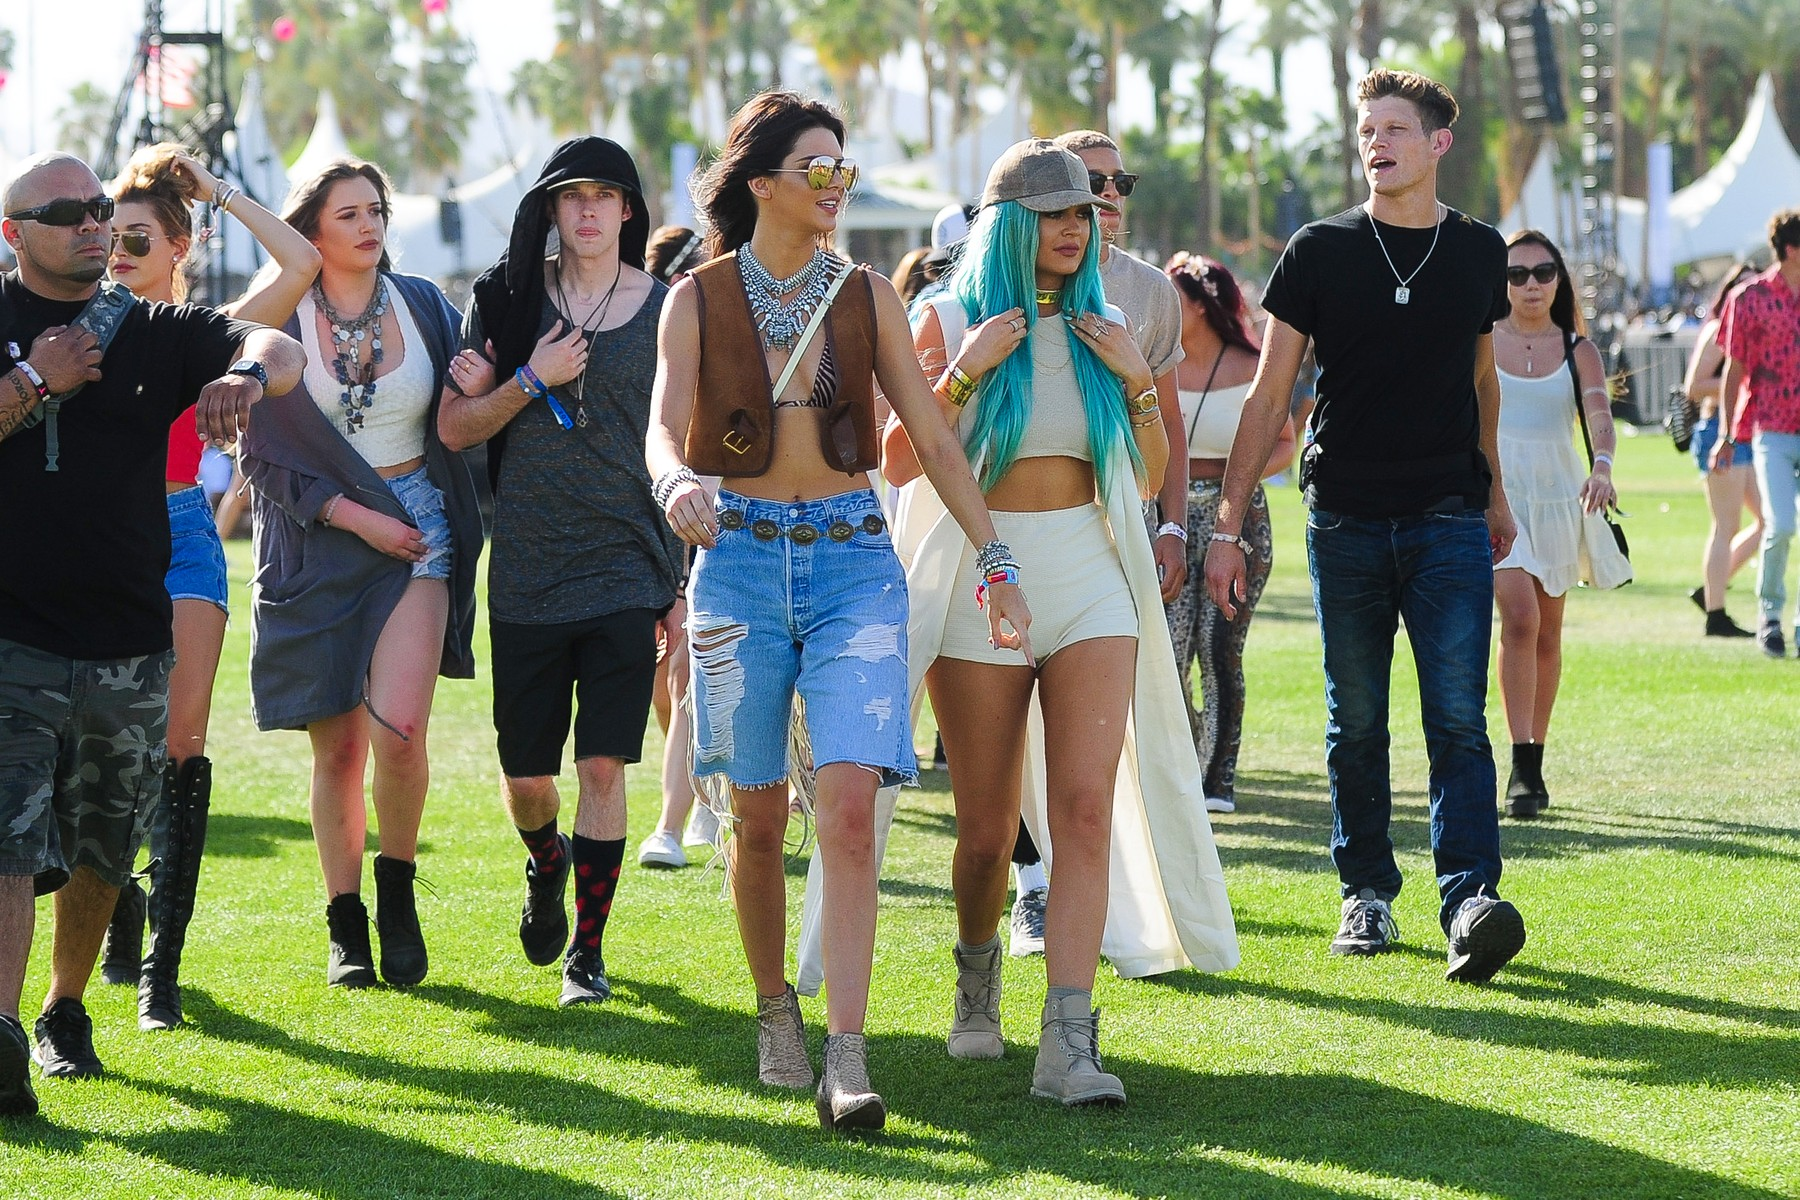 Indio, CA -  Kylie and Kendall Jenner team up with their friends and Hailey Baldwin to enjoy the first day of the Coachella Music Festival held in the Empire Polo Club in Indio, CA.        April  10, 2015, Image: 238268397, License: Rights-managed, Restrictions: NO Brazil, Model Release: no, Credit line: - / Backgrid USA / Profimedia